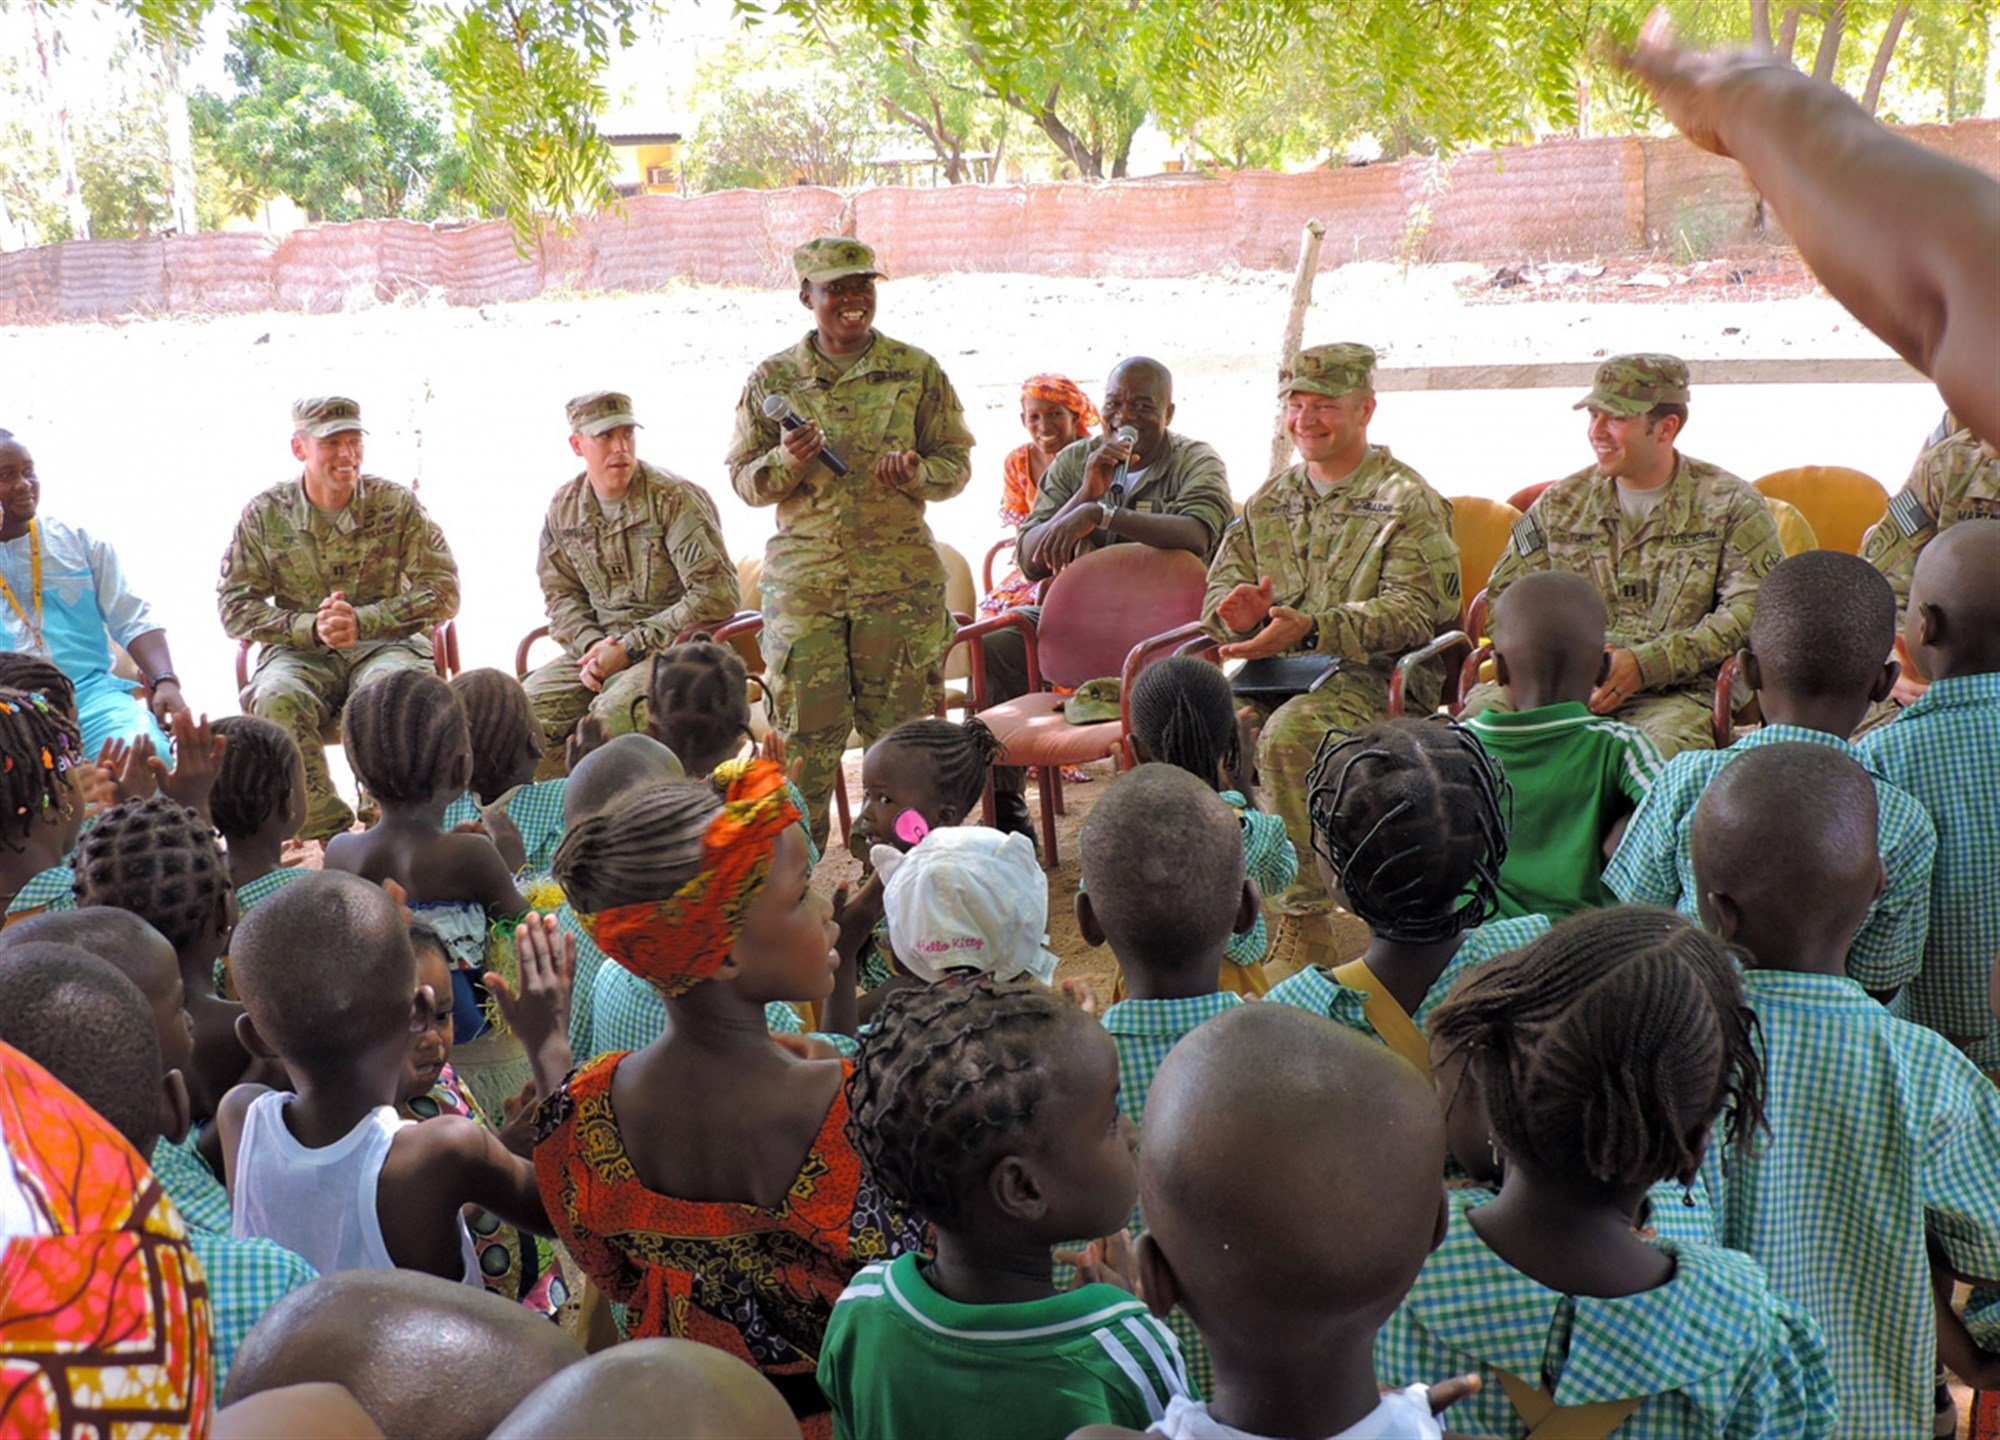 """Education is fundamental to the development of the country,"" said Sgt. Eunice Tahsoh, a supply technician assigned to 2nd Infantry Brigade Combat Team, 3rd Infantry Division while speaking to children from Ecole Maternelle Base Aerienne 301 Garoua (government nursery school) April 8. Soldiers from 3rd Inf. Div. provide non-lethal support to their Cameroonian hosts as part of U.S. Africa Command. (U.S. Army Africa photo by Spc. Jonathan Singletary/Released)"